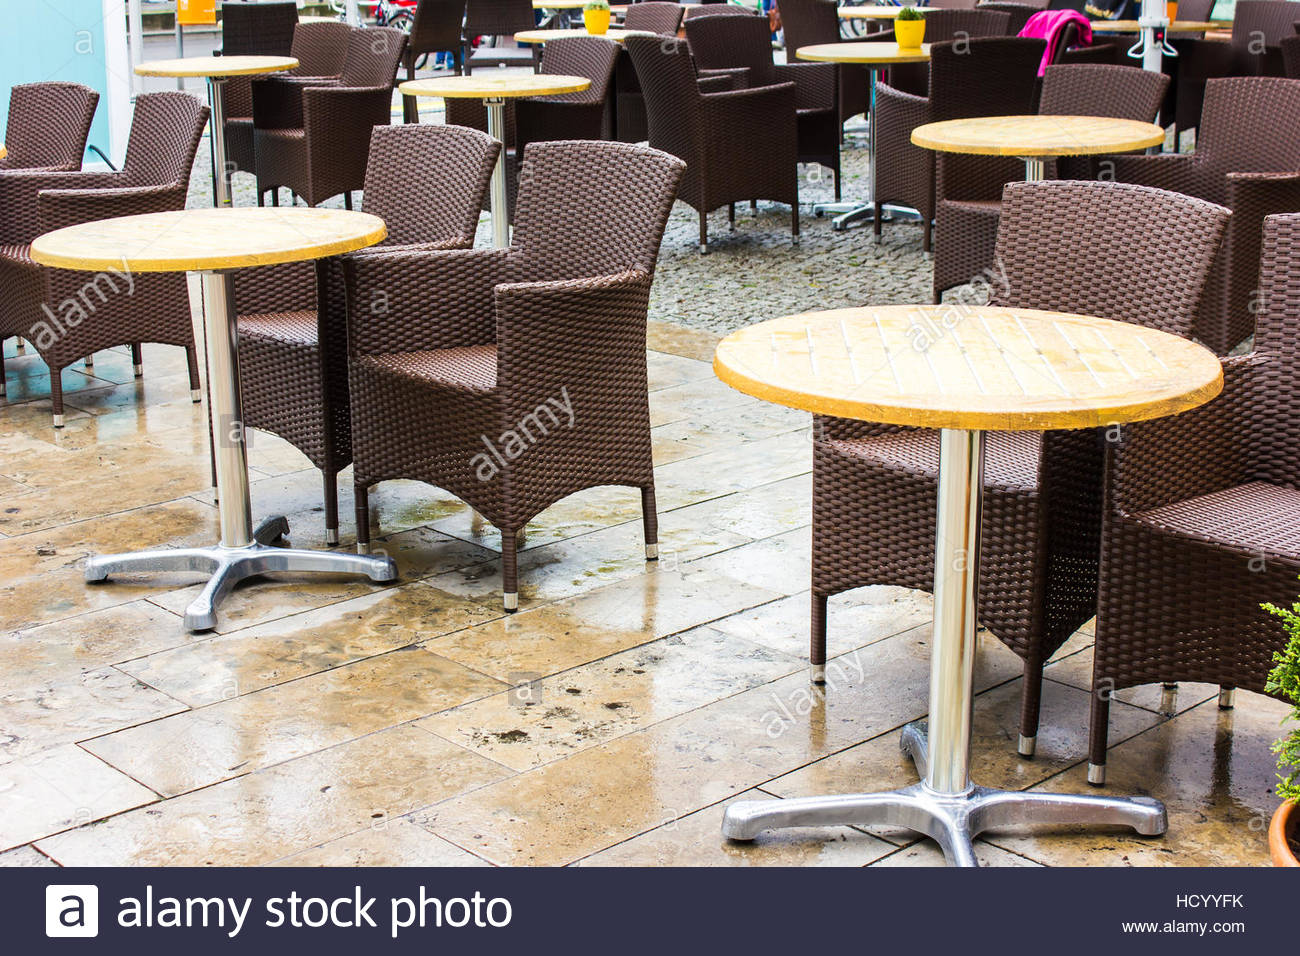 Outdoor Cafe City Rain Berlin Empty Coffee Shop Outside While Raining,  Tables Schairs Outside, Wet, Coffee Shop Table A Rainy Weather Scene